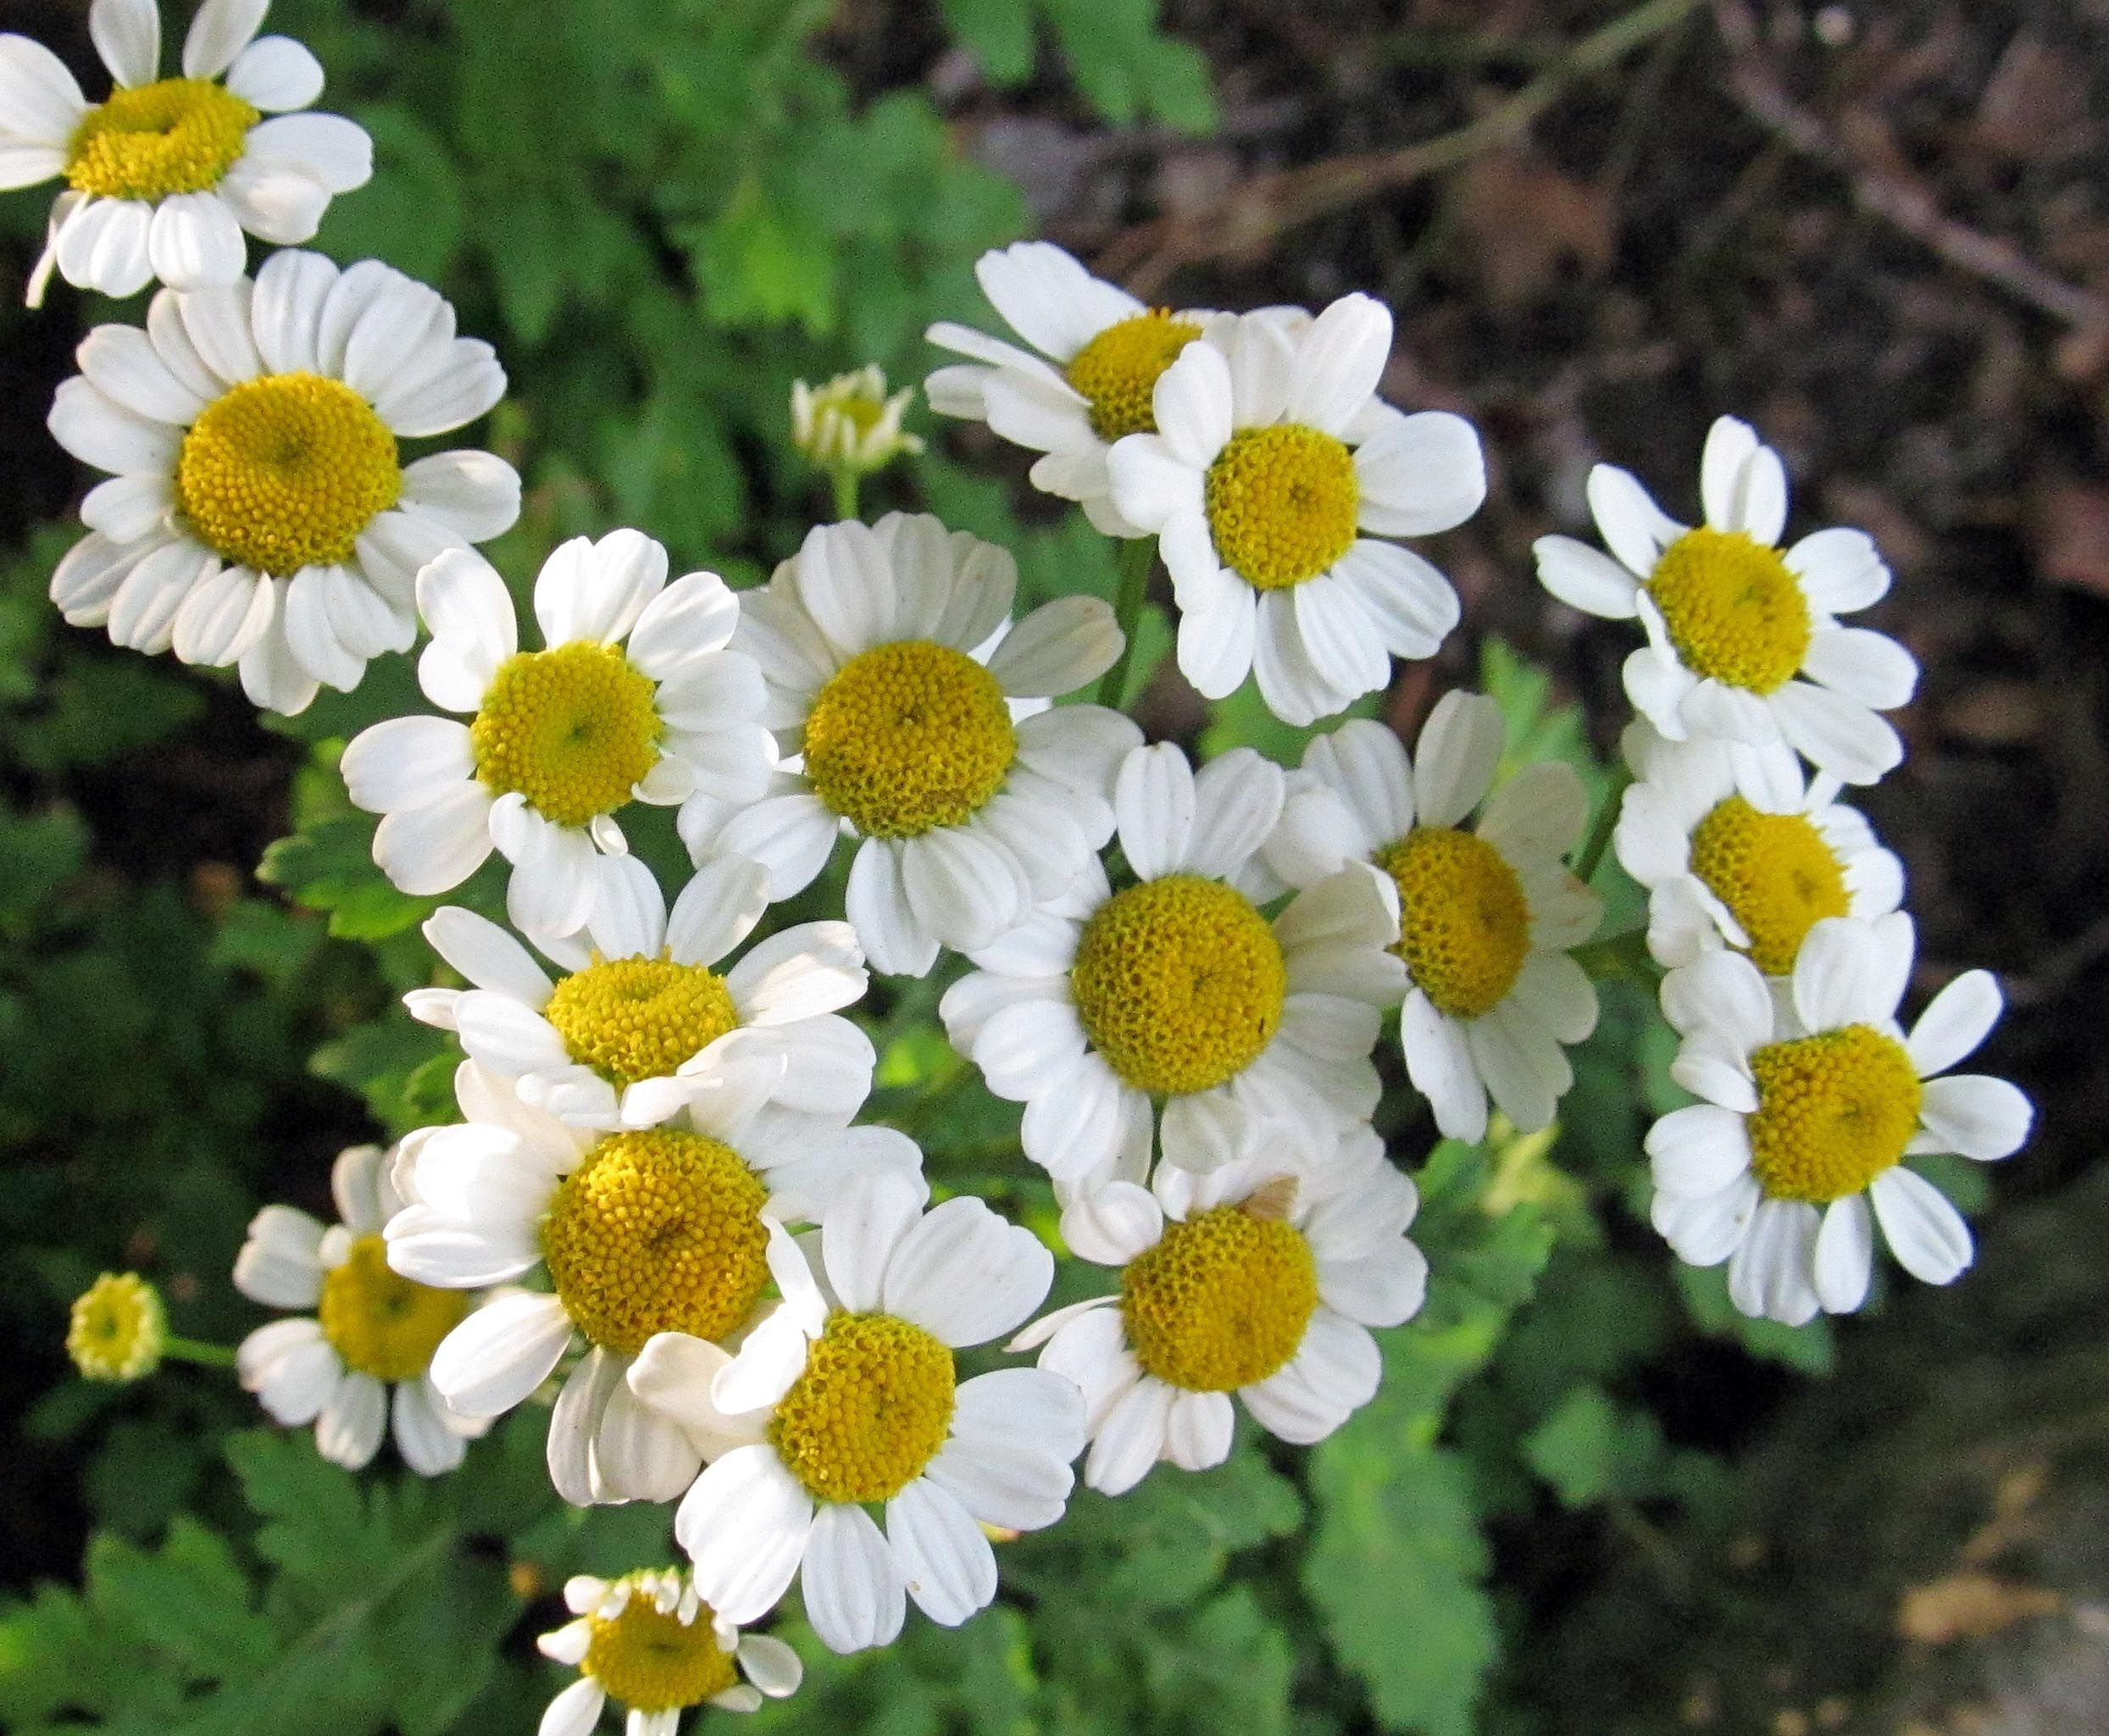 Feverfew Tanacetum Parthenium Or Pyrethrum Parthenium Or Chrysanthemum Parthenium Photographed In A Wildflower Garden Wildflower Garden Wild Flowers Plants